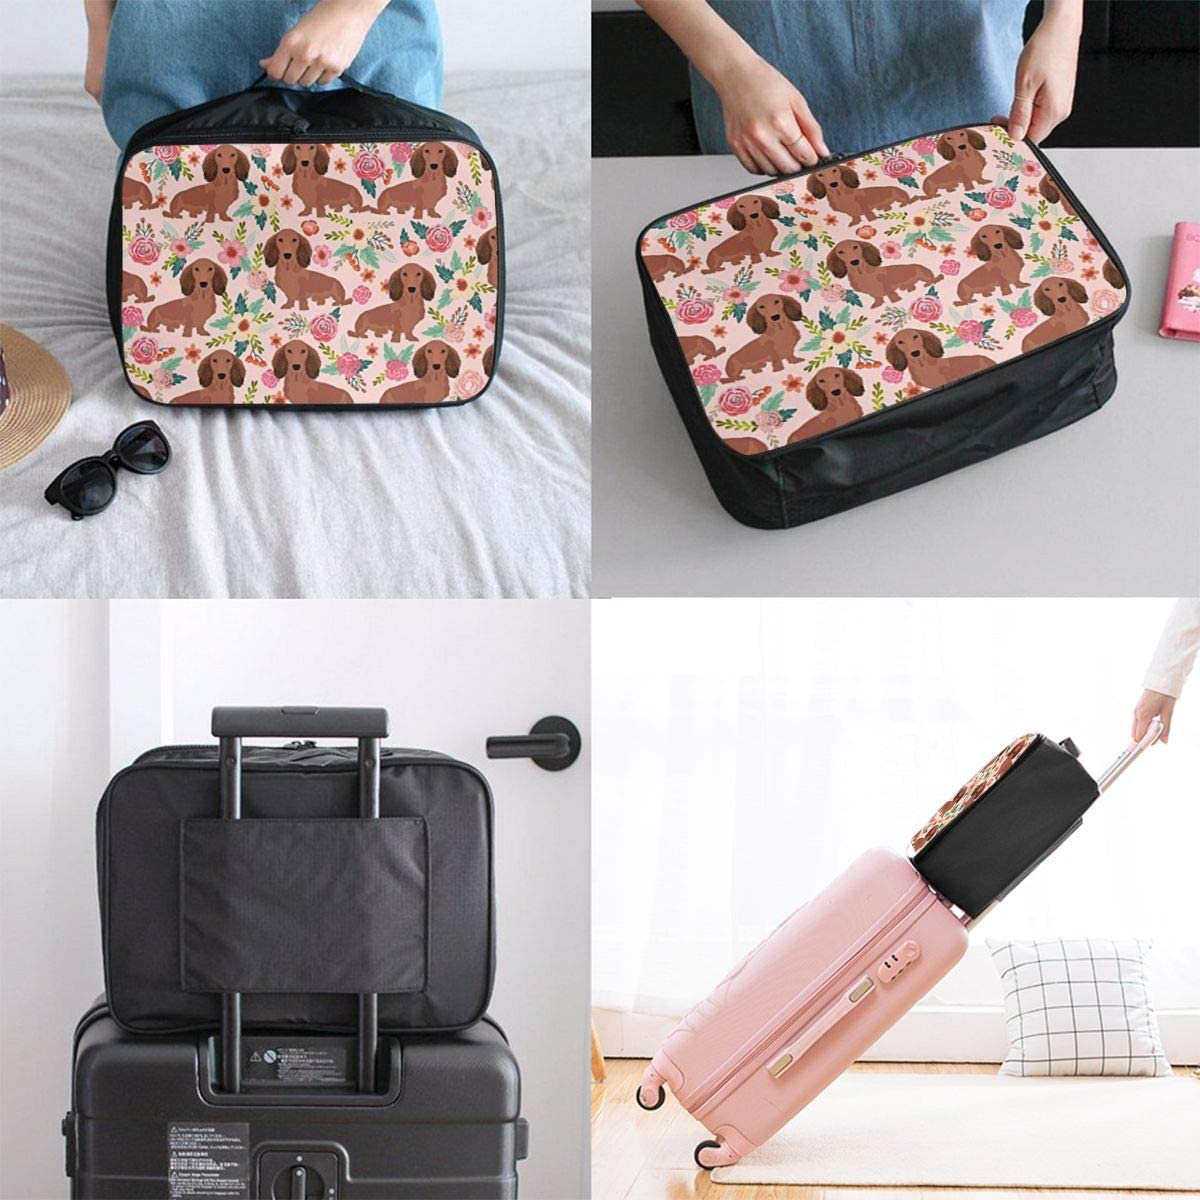 Dachshund Pattern Travel Carry-on Luggage Weekender Bag Overnight Tote Flight Duffel In Trolley Handle